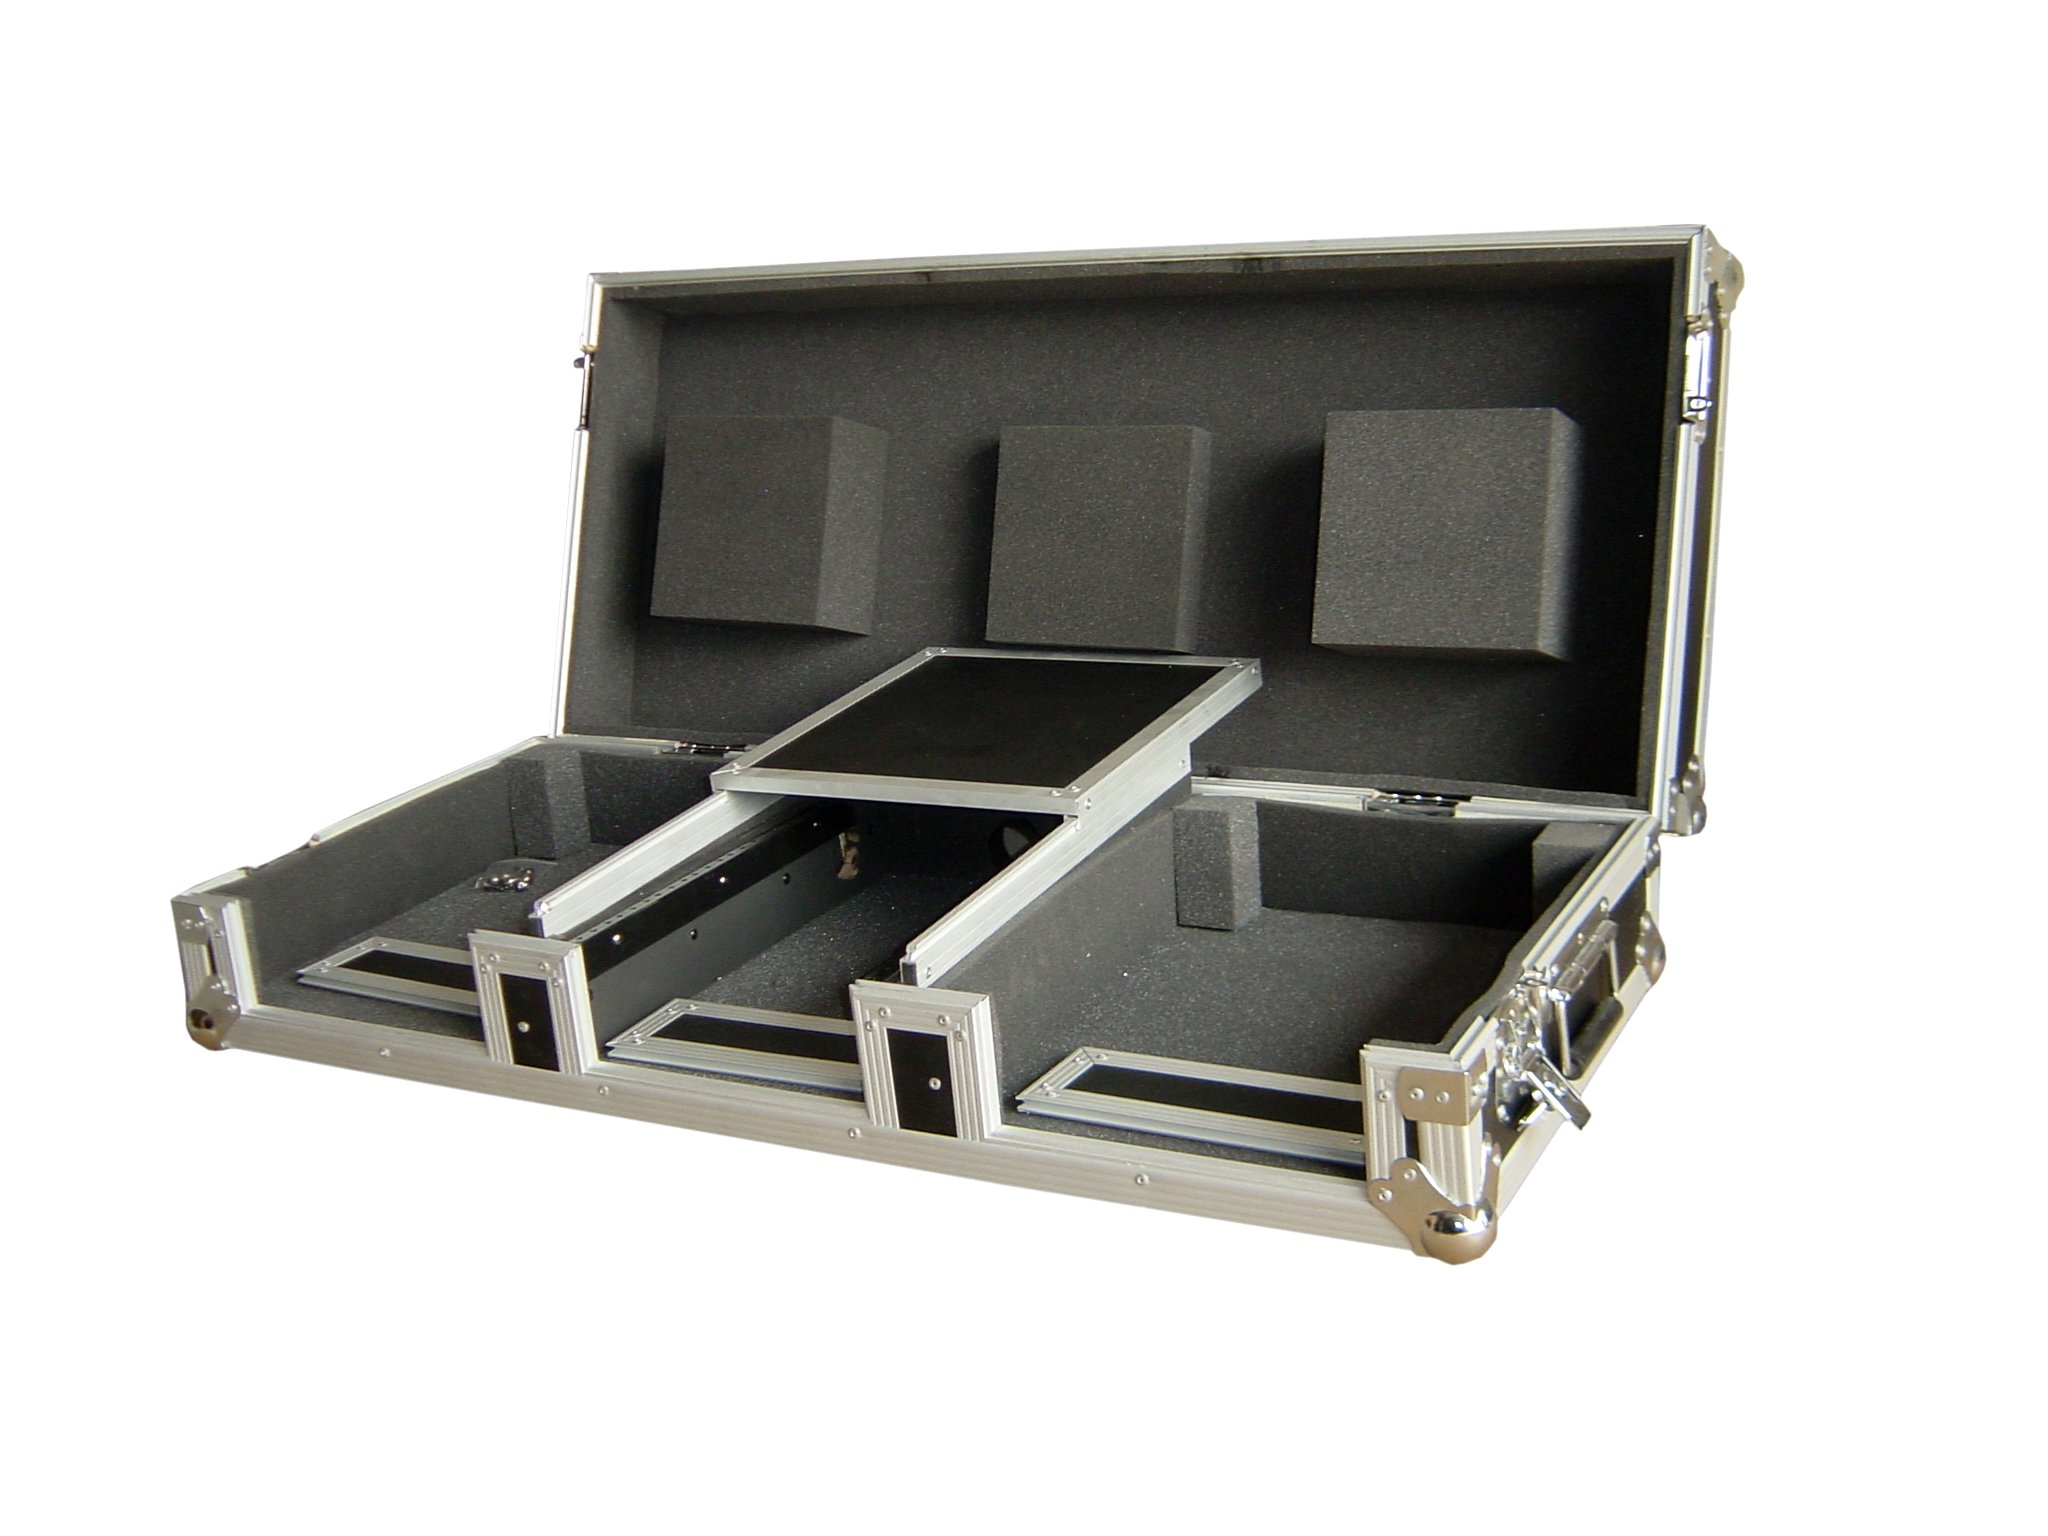 Professional DJ Coffin Case - 10'' - For CD Turntables - Mixer & Serato Interface - Removable Sliding Laptop Platform - Stackable Corners - ATA Pro By GMI Pro